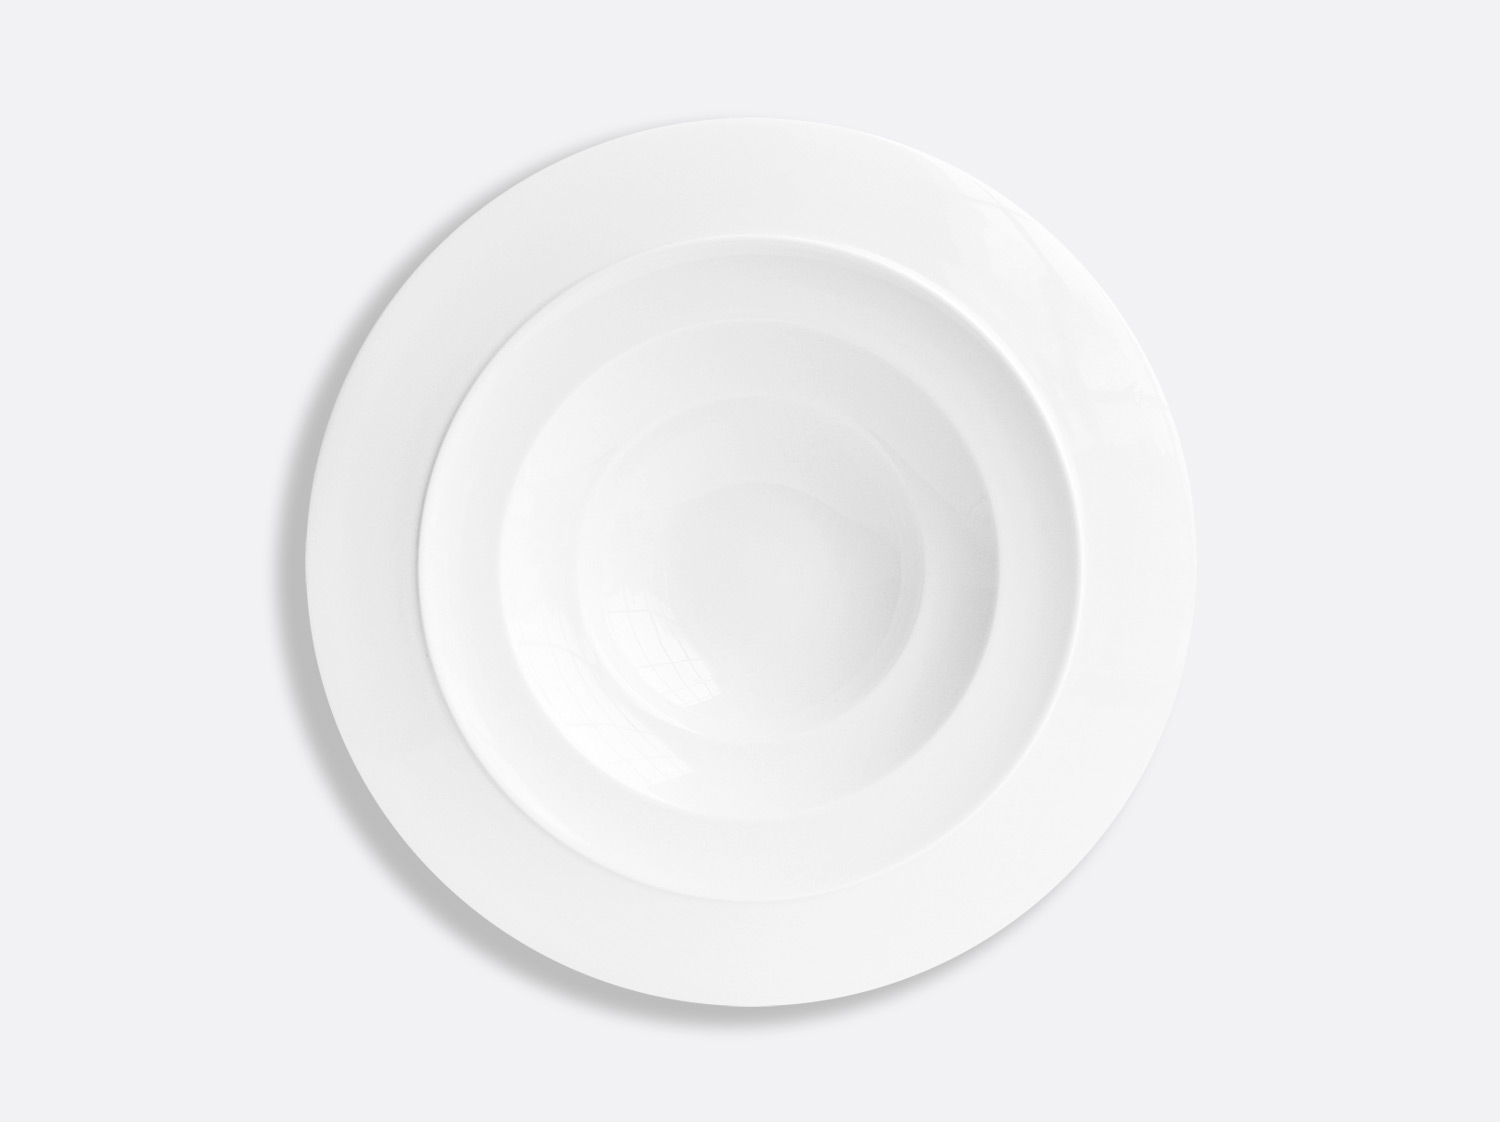 China Rim soup 27.5 cm of the collection Conti | Bernardaud